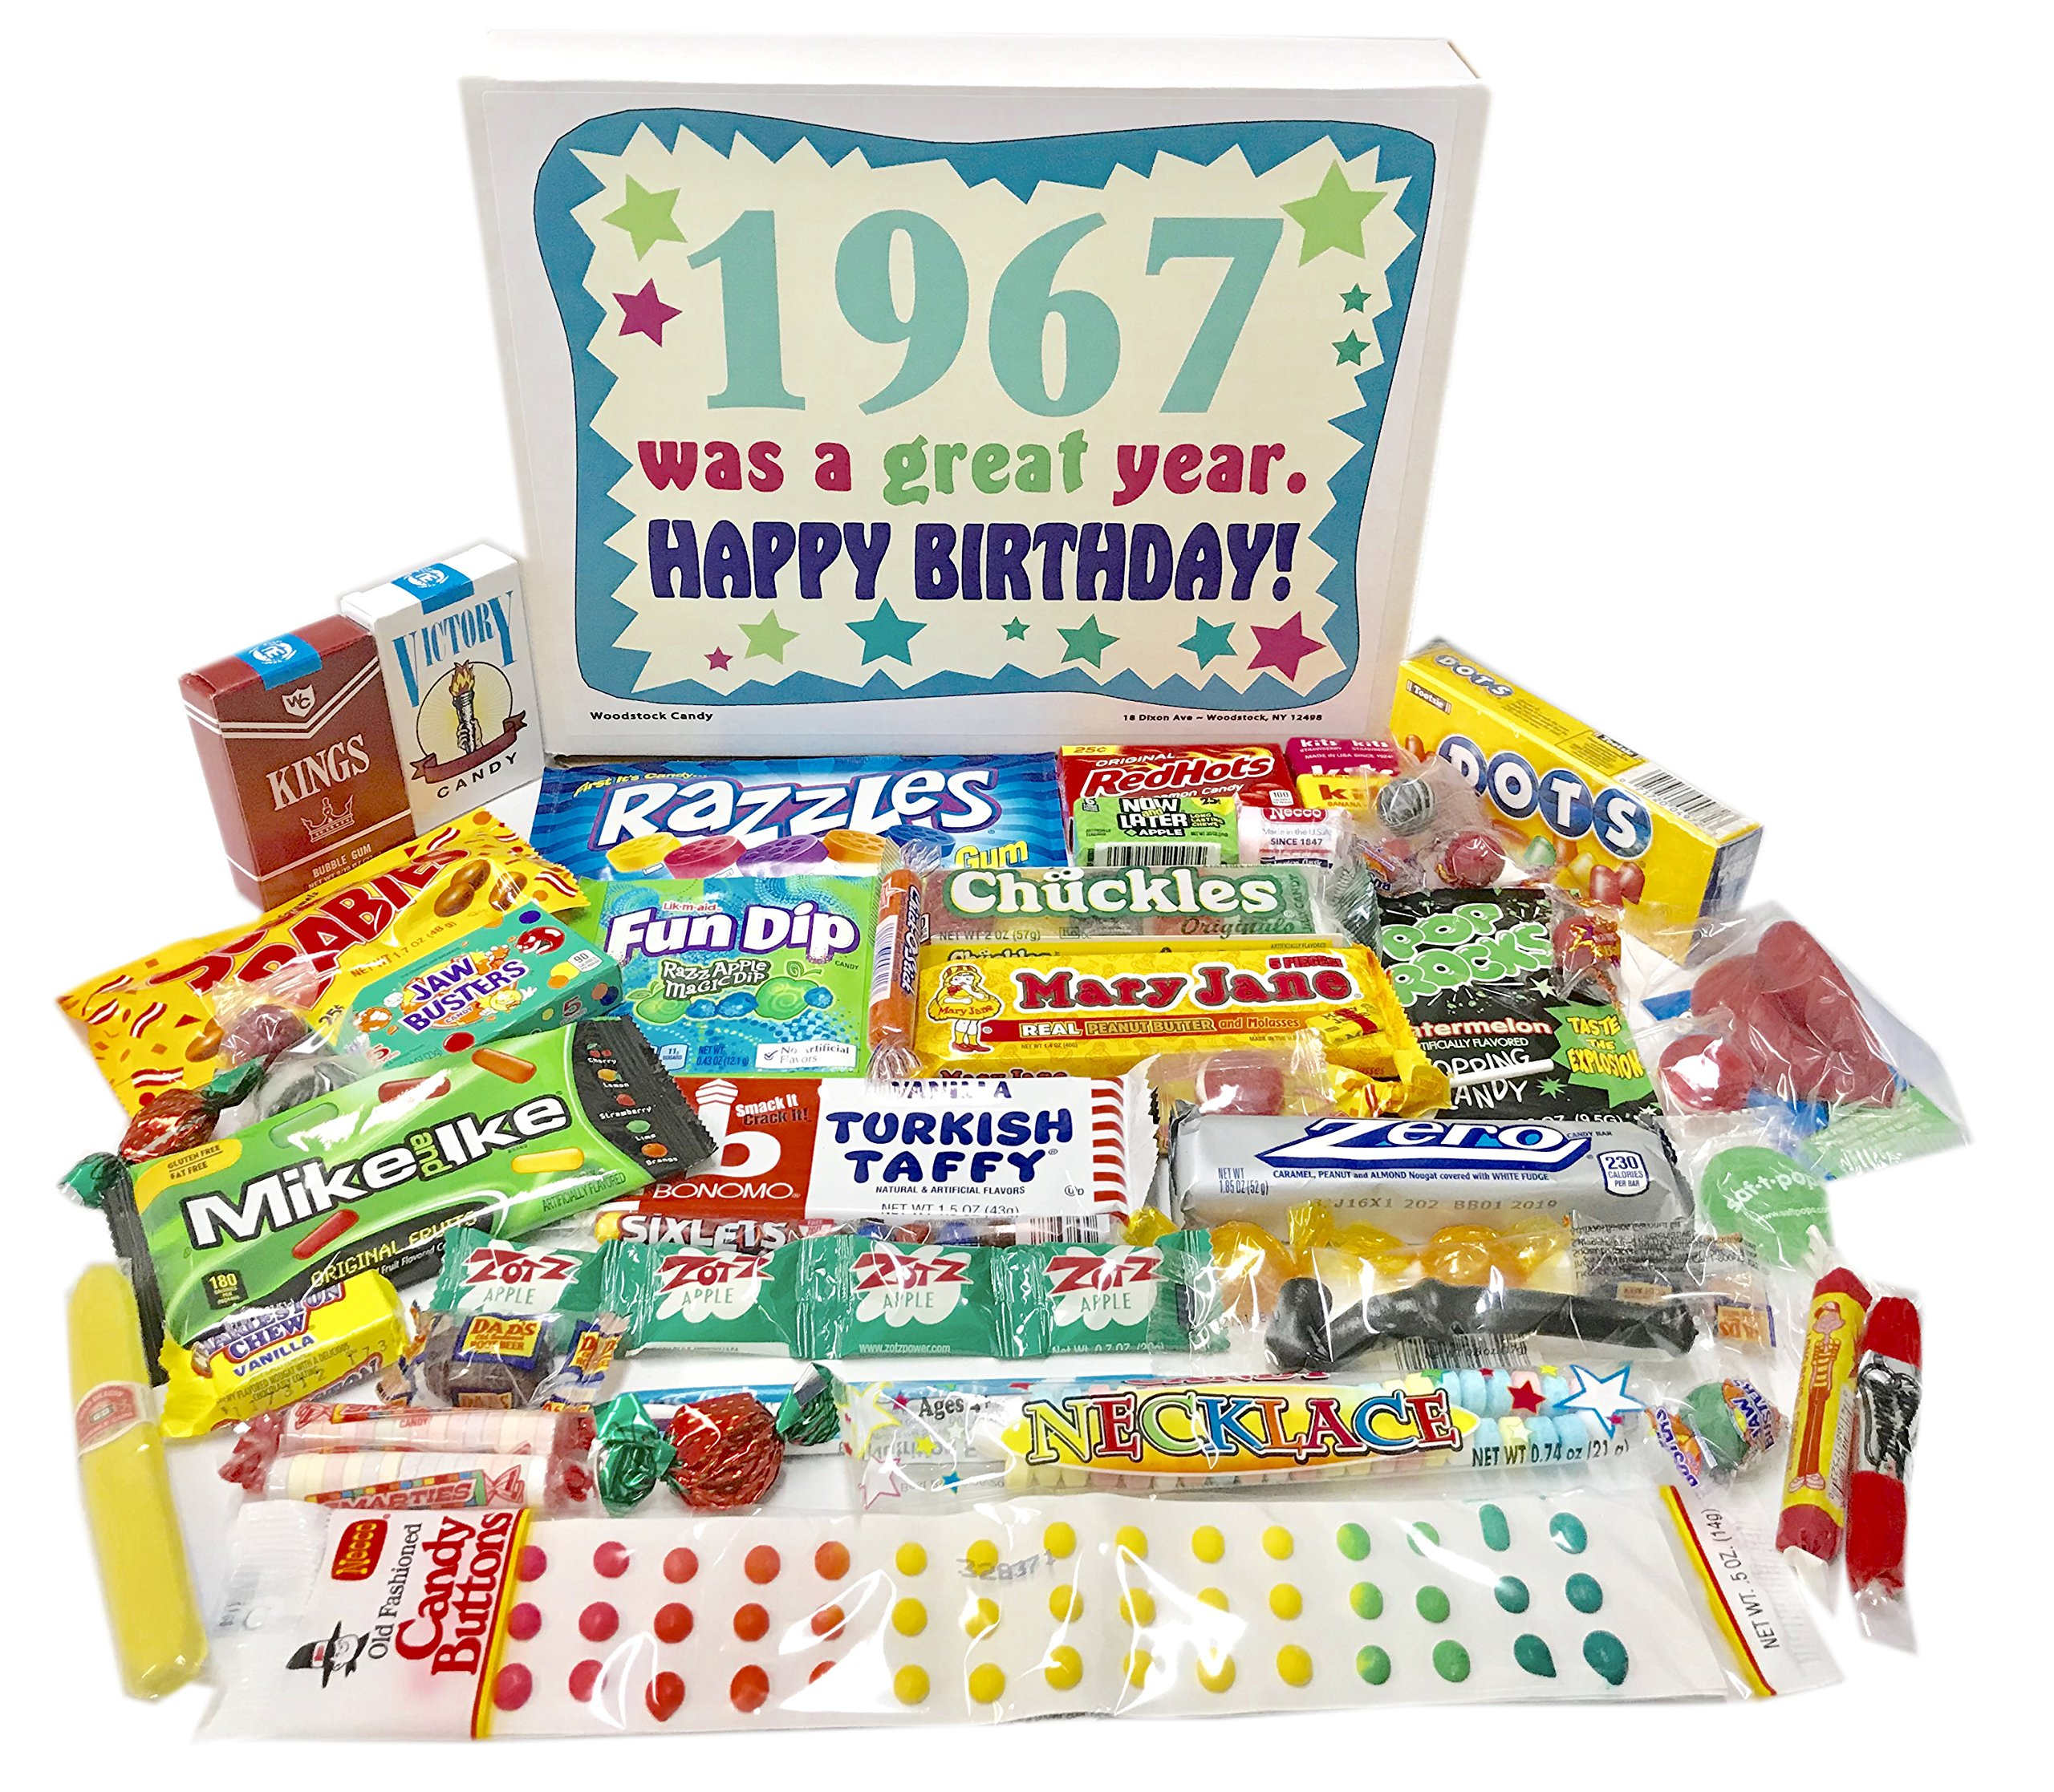 Woodstock Candy ~ 1967 52nd Birthday Gift Box Assortment of Nostalgic Retro Candy from Childhood for 52 Year Old Man or Woman Born 1967